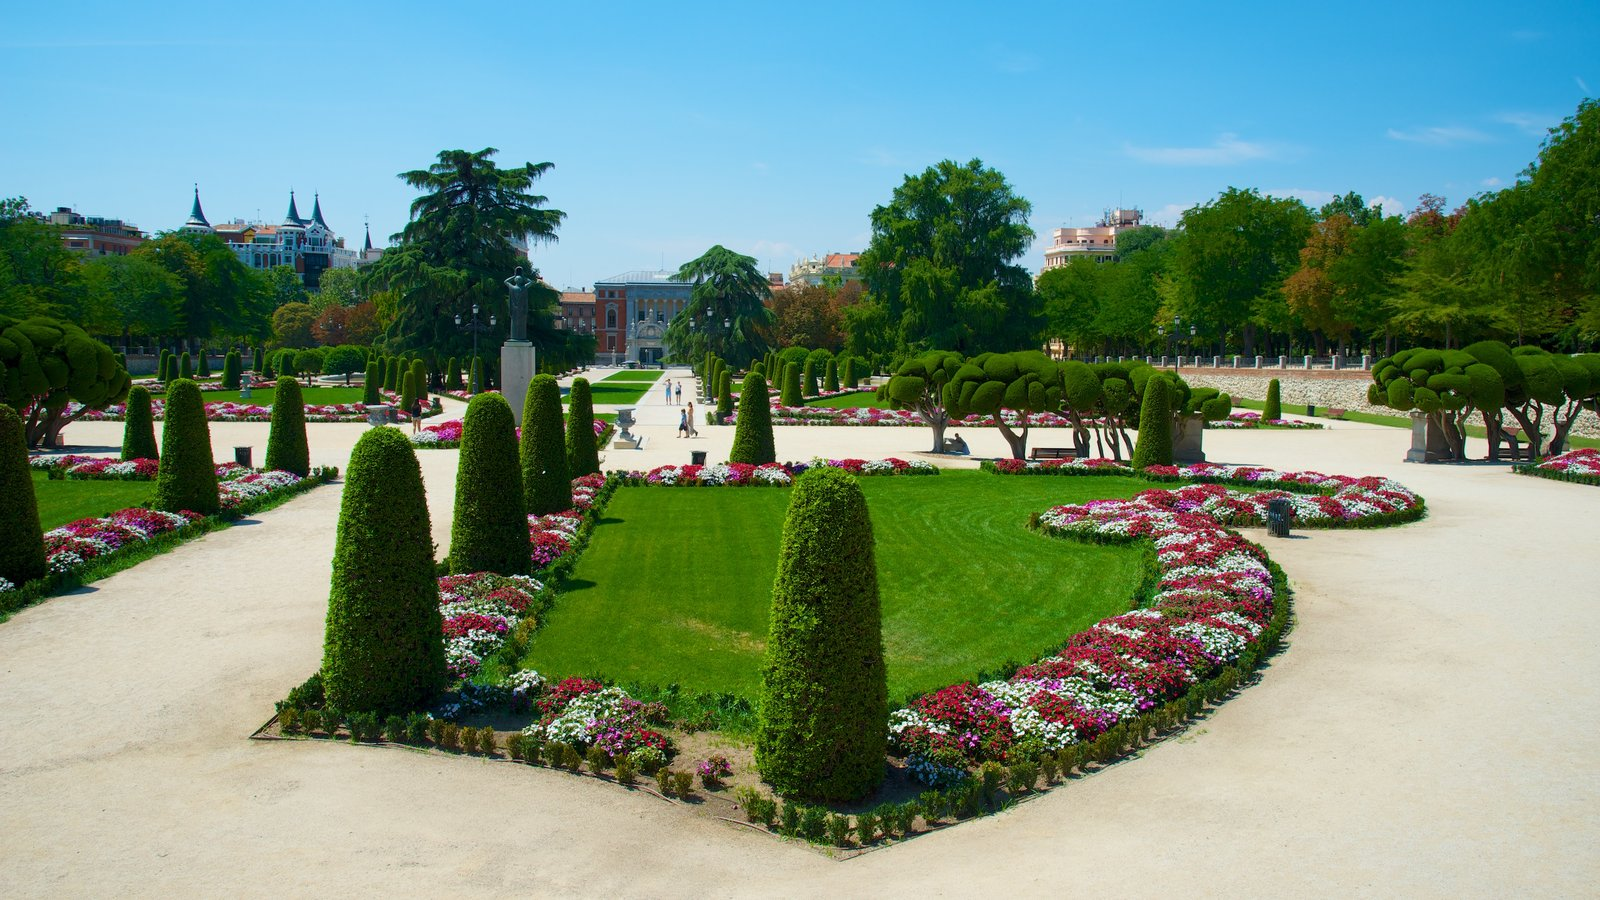 El Retiro Park Pictures: View Photos & Images of El Retiro Park